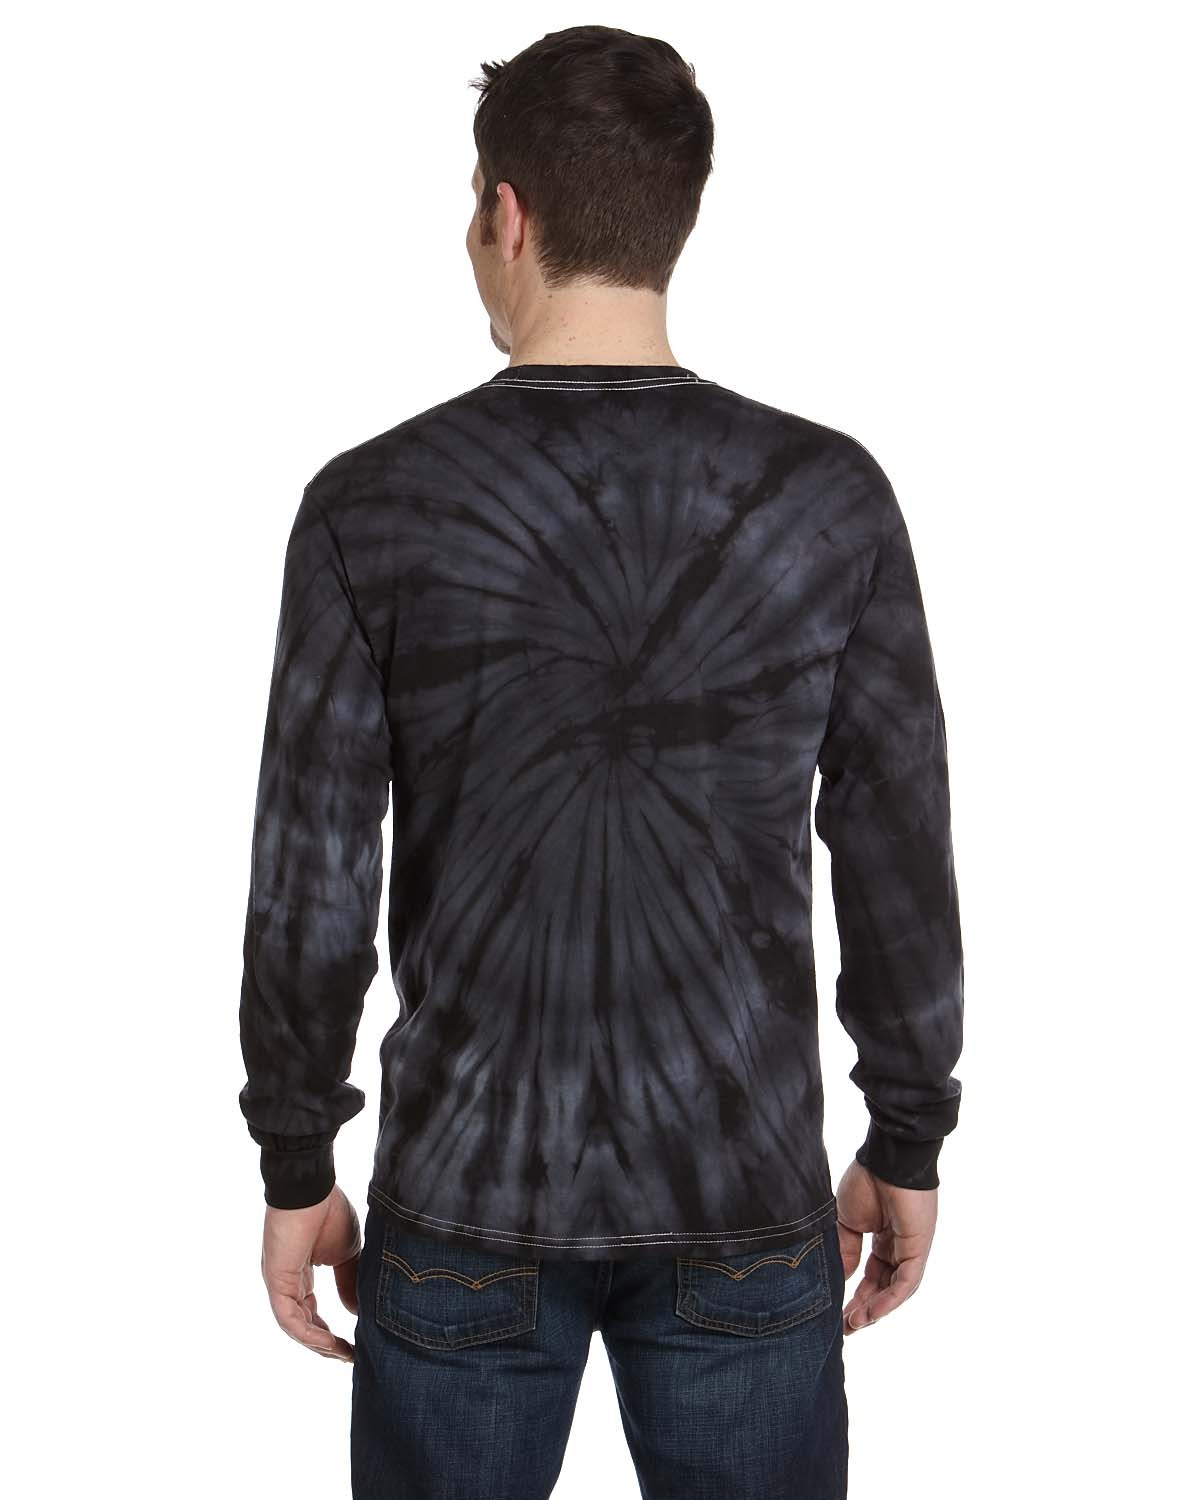 CD2000 Tie-Dye SPIDER BLACK